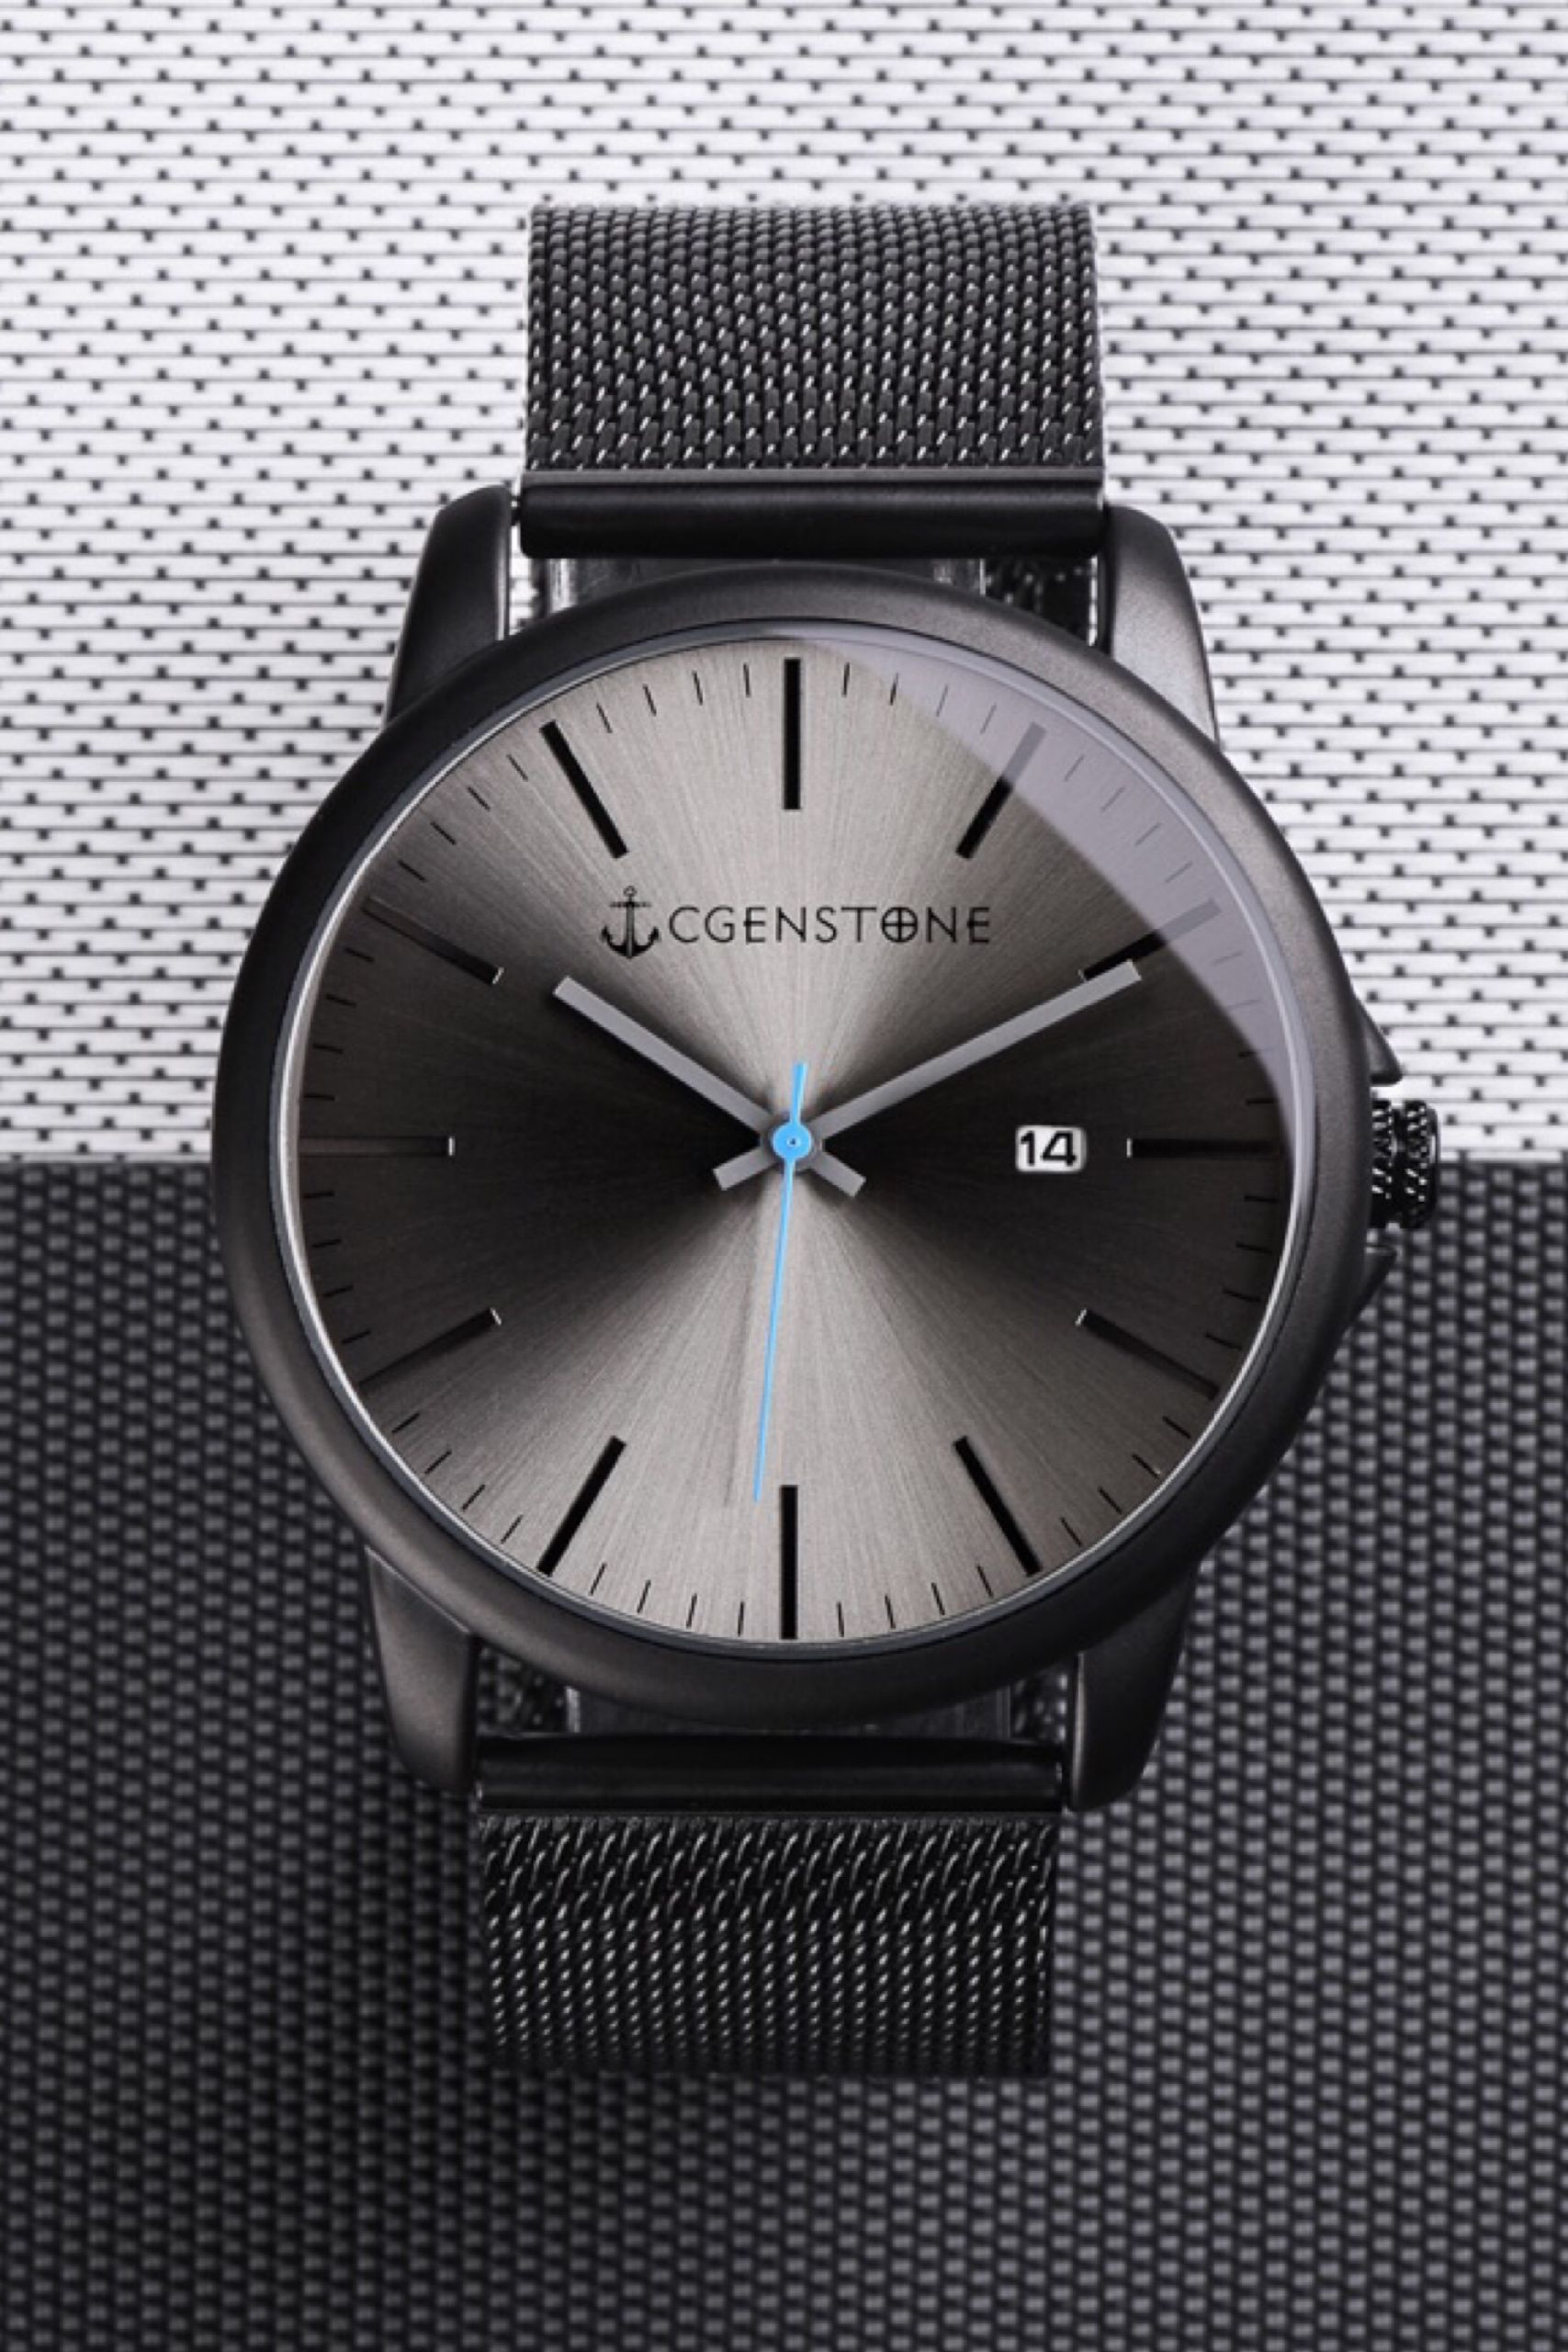 2b5e5d343e18 Get a Gift for him this holiday season! 🎁🔥- Free Worldwide Shipping - Men  Watches - Gift for him - Cgenstone